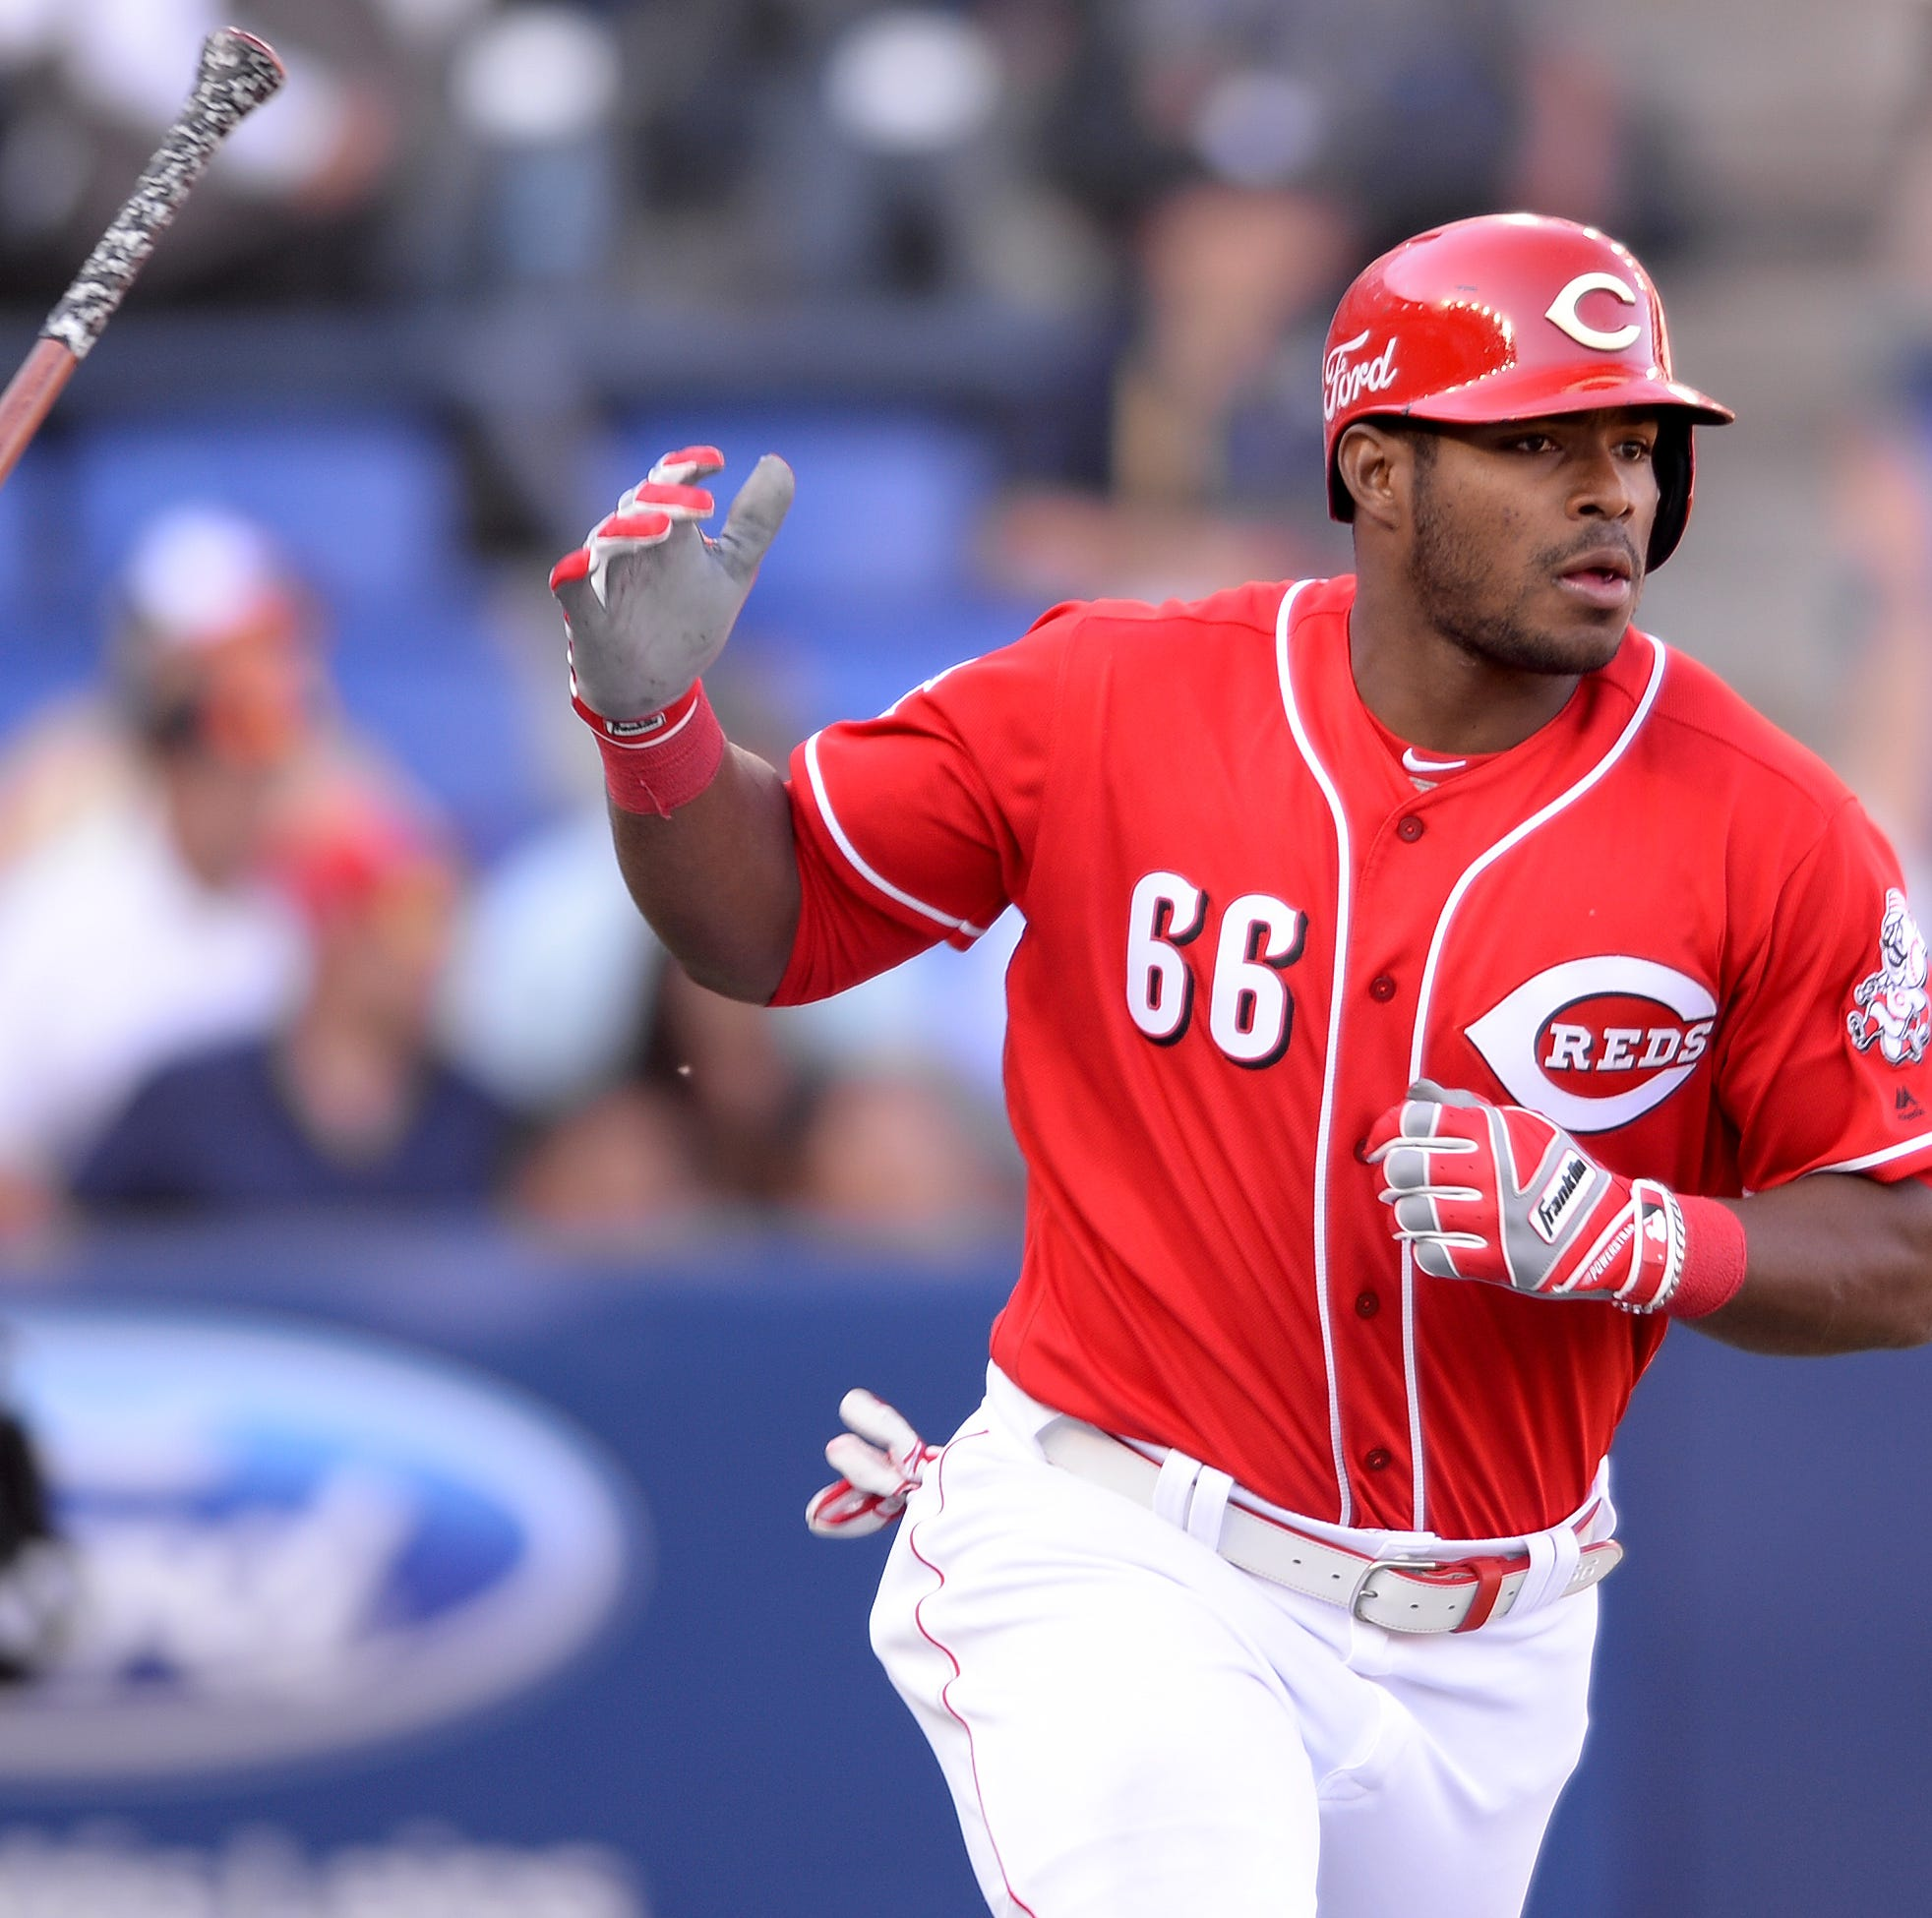 Cincinnati Reds outfielder Yasiel Puig makes his long-awaited return to Los Angeles